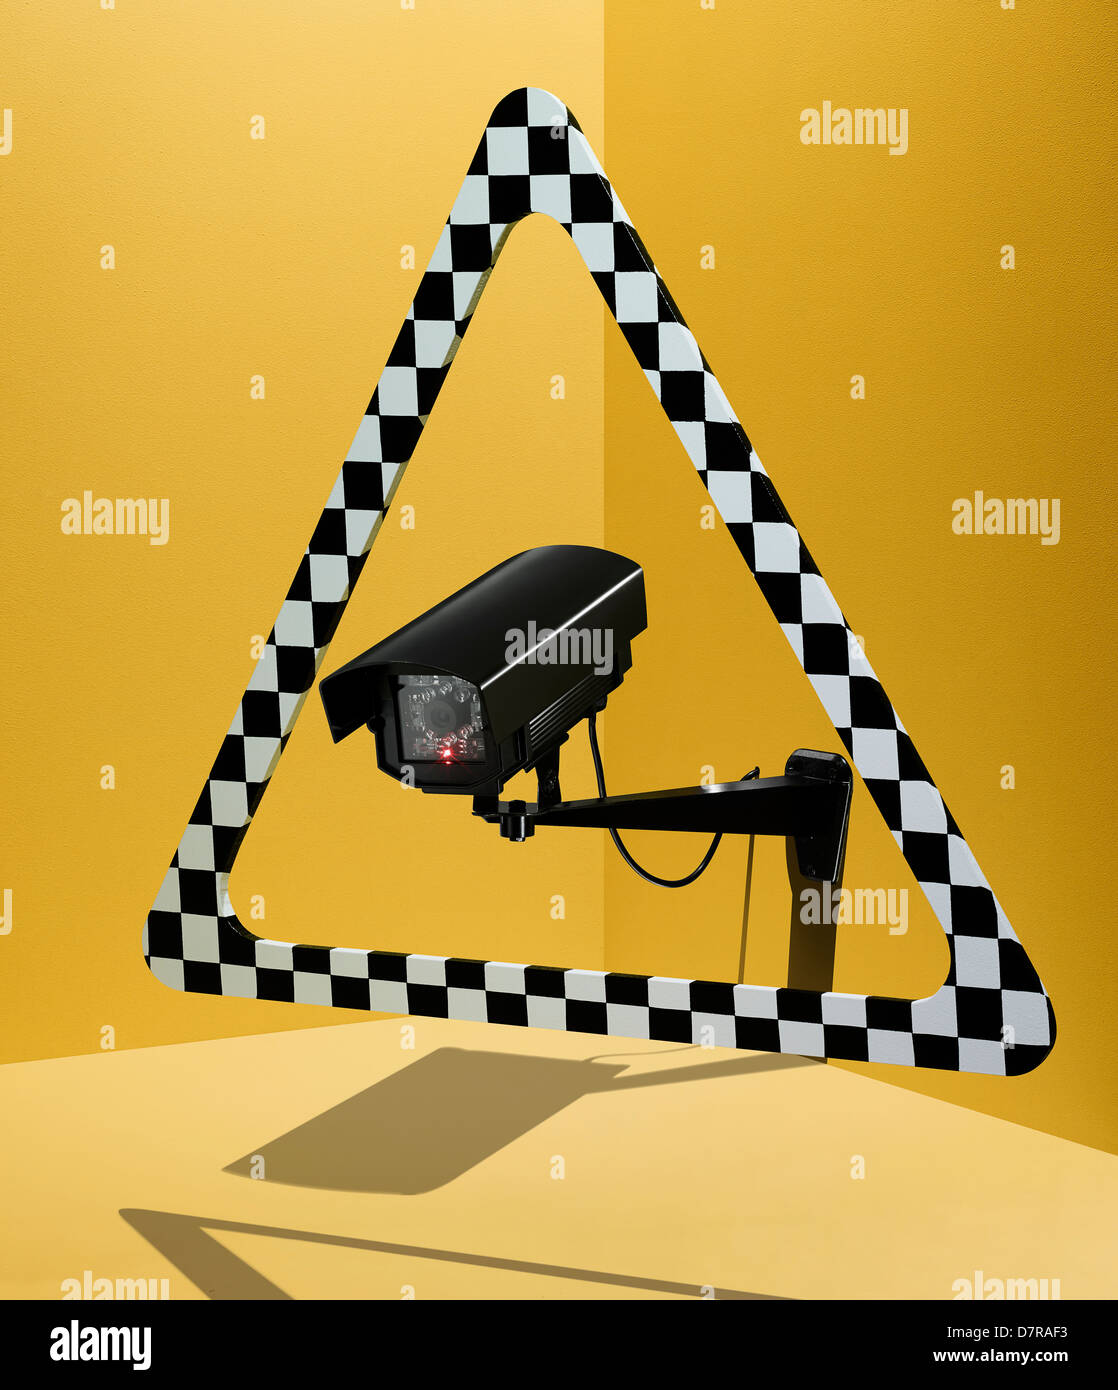 3D CCTV Warning Sign - Stock Image